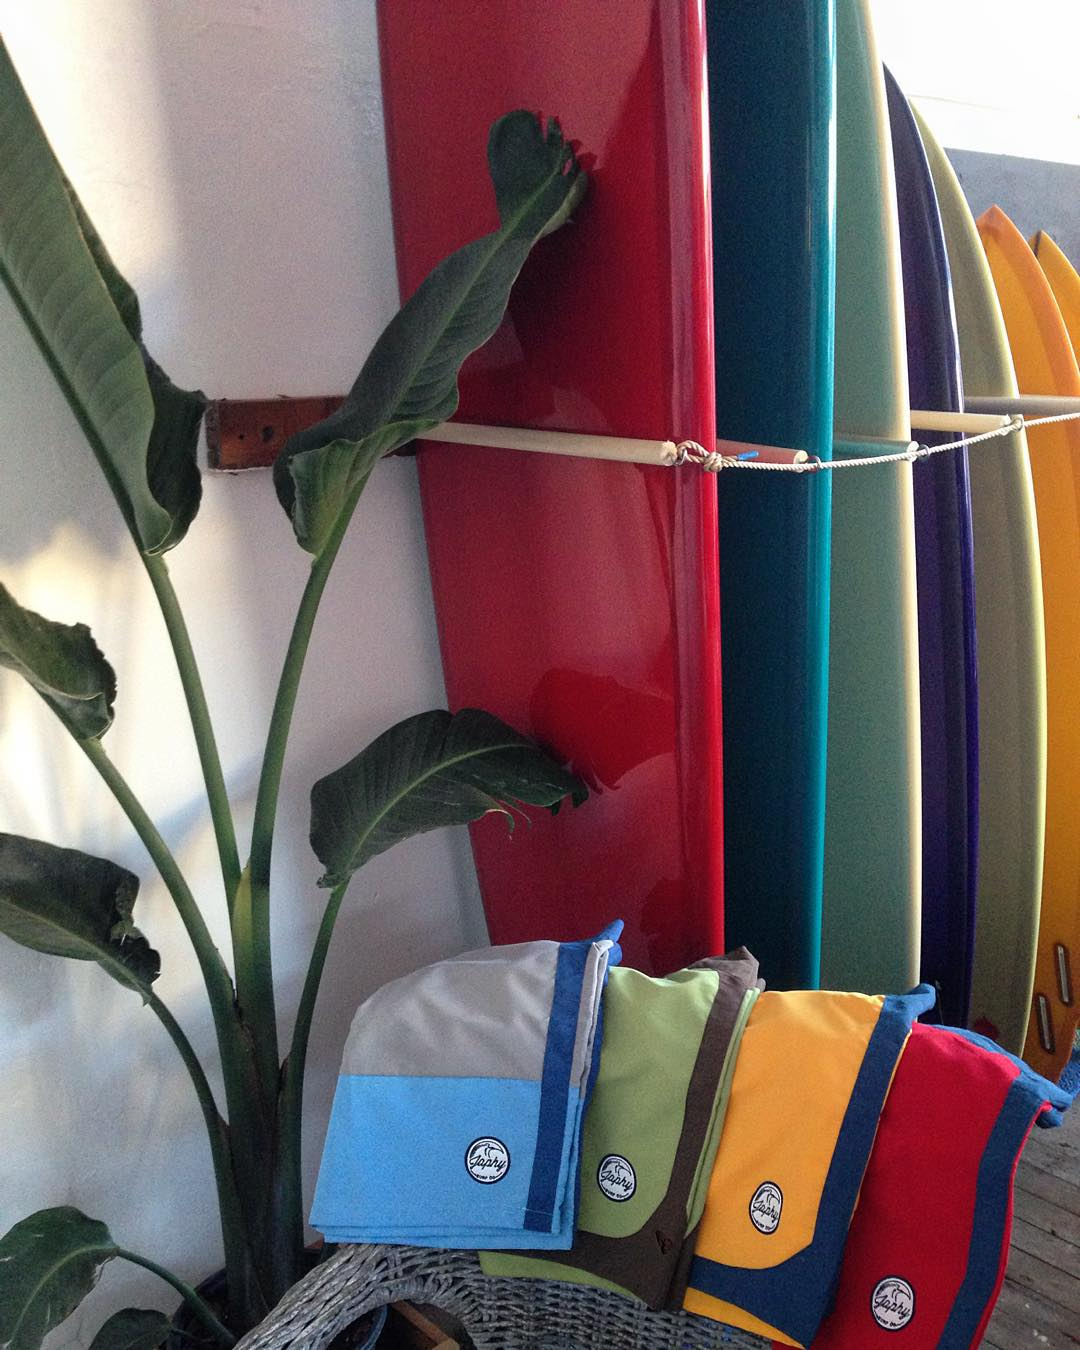 Assorted color, style and size.  @japhysurfco #japhysurfco #beachnik #surf #travel #surfing #adventure #menswear #swimwear #nofilter #classic #retro #CA #SF  Live #BurntandBarefoot